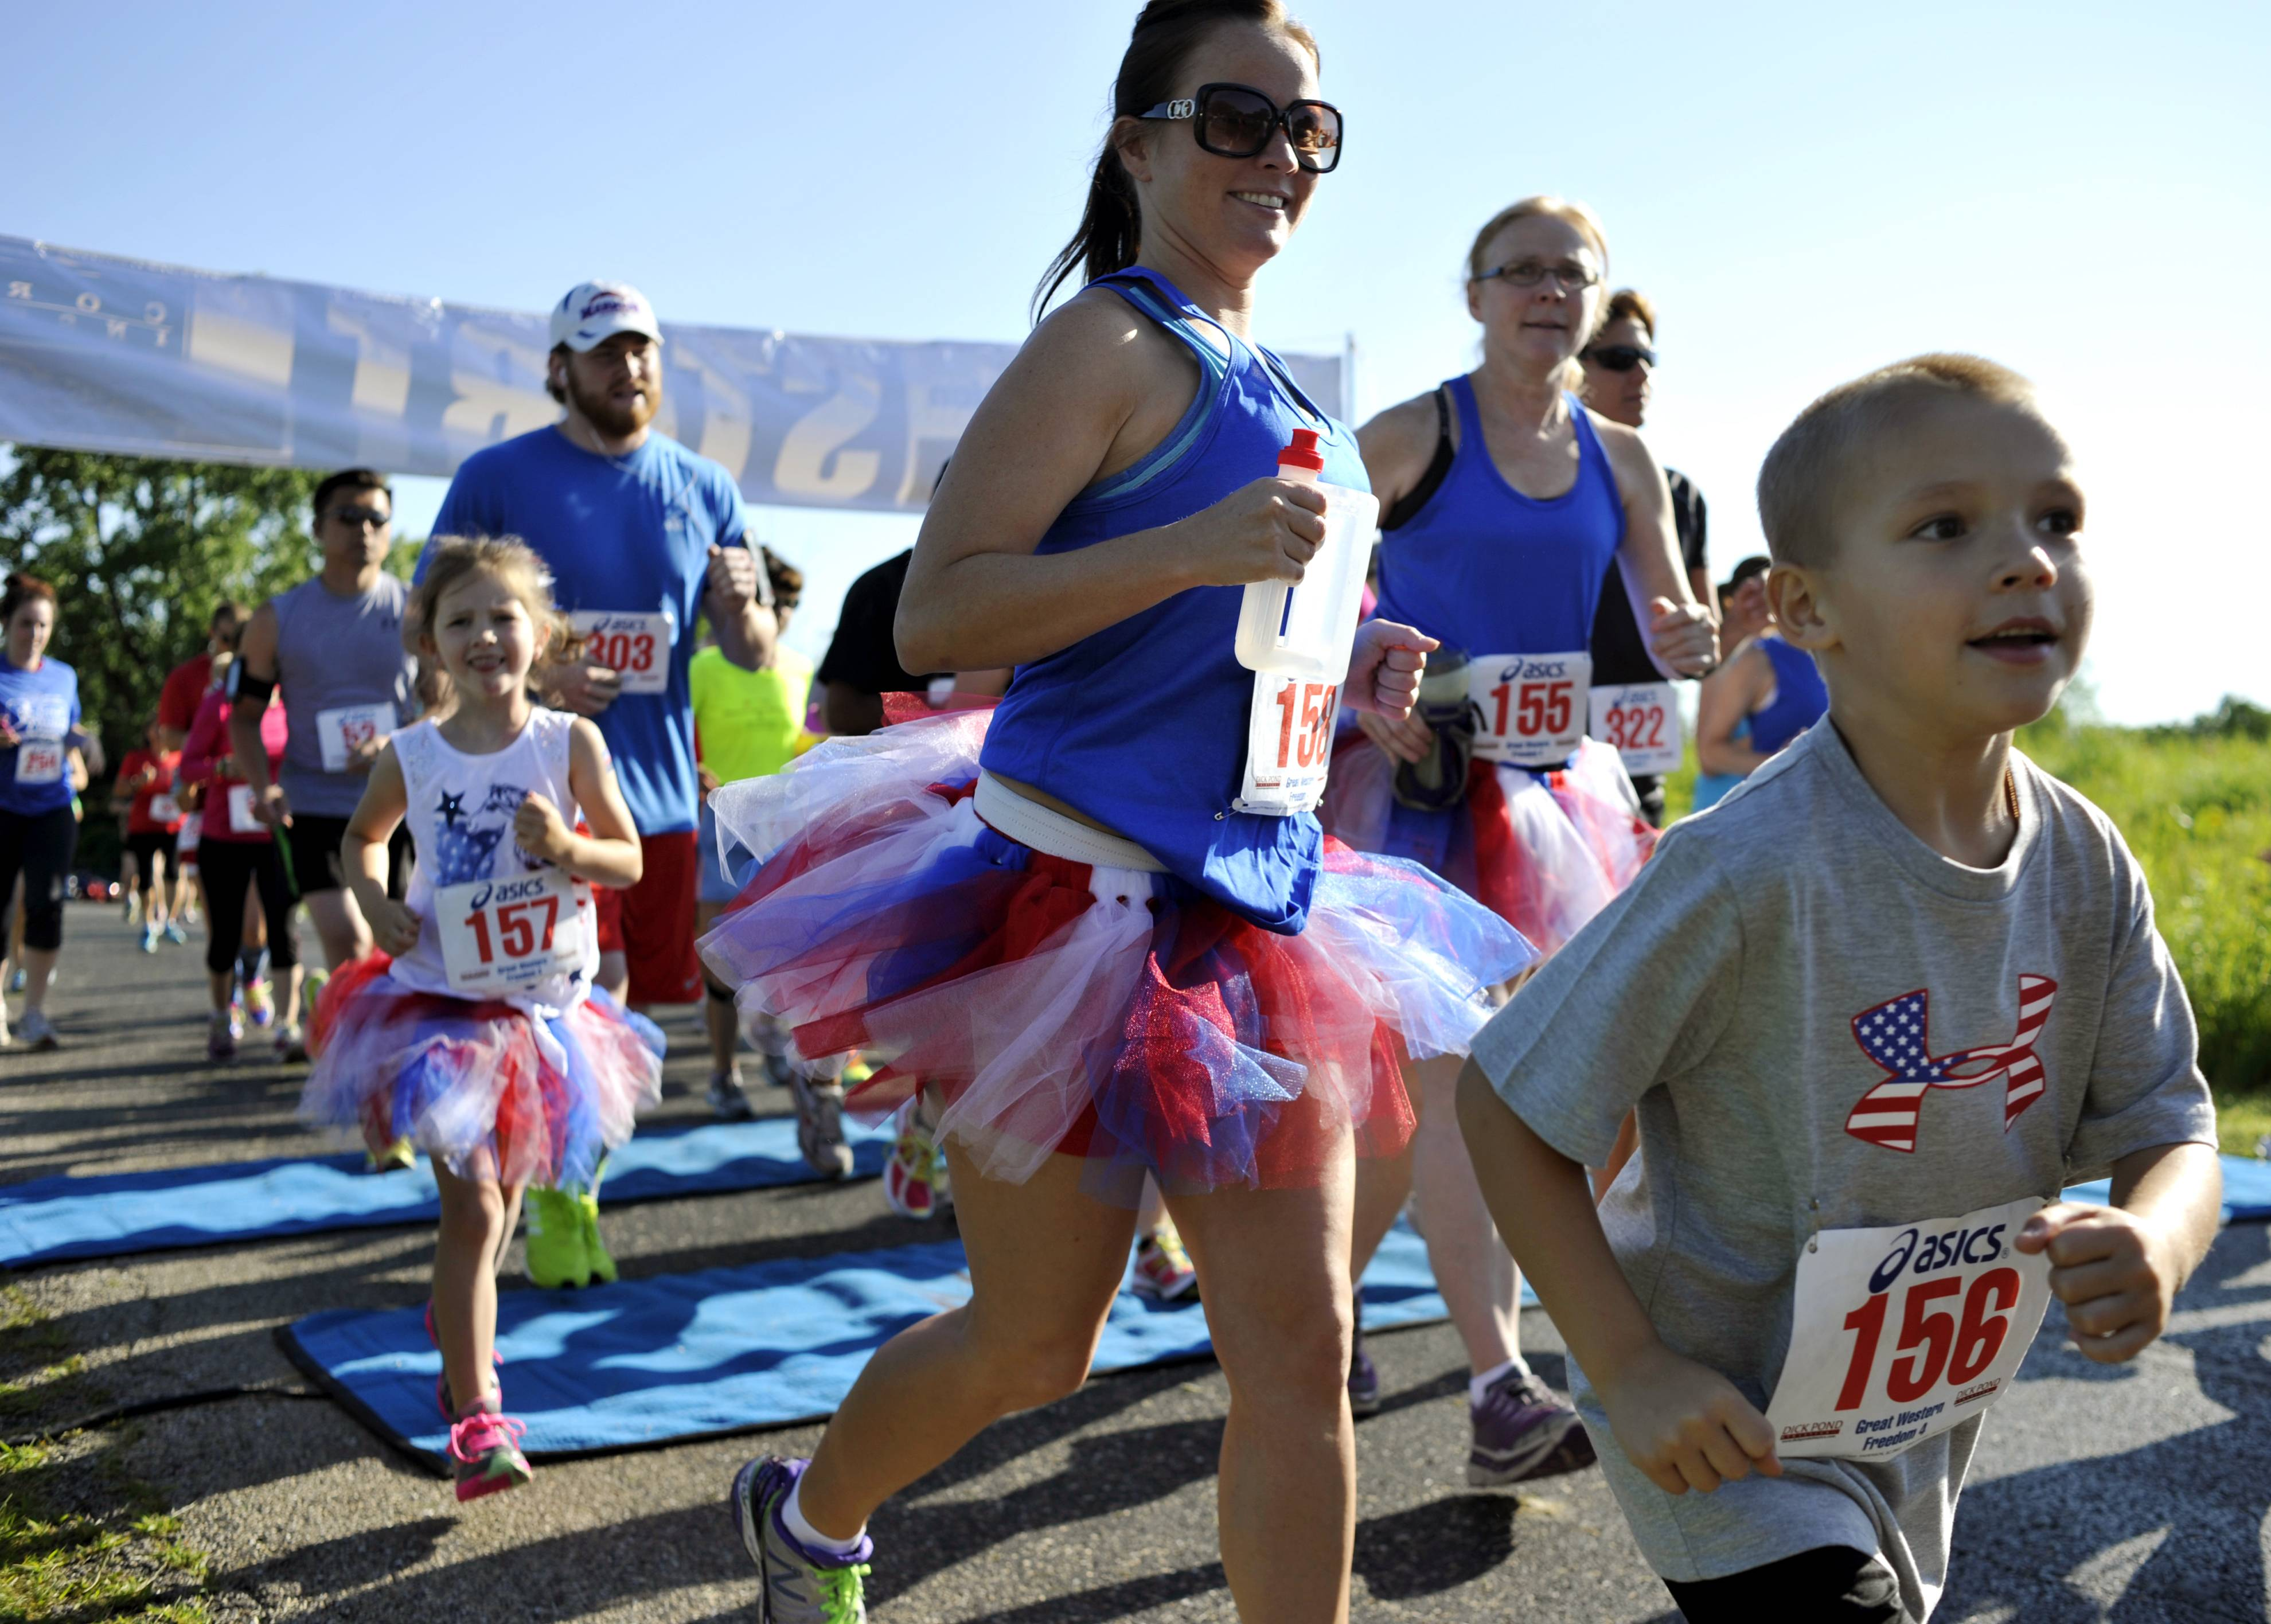 Aiden Jaquez, 6, gets a head start with his family, Margie Clark, Addison Clark, 6, and grandmother Kathleen Taylor, of Montgomery, close behind him at the July Fourth Great Western Freedom 4 to benefit Lazarus House at the LeRoy Oakes Forest Preserve in St. Charles on Friday.